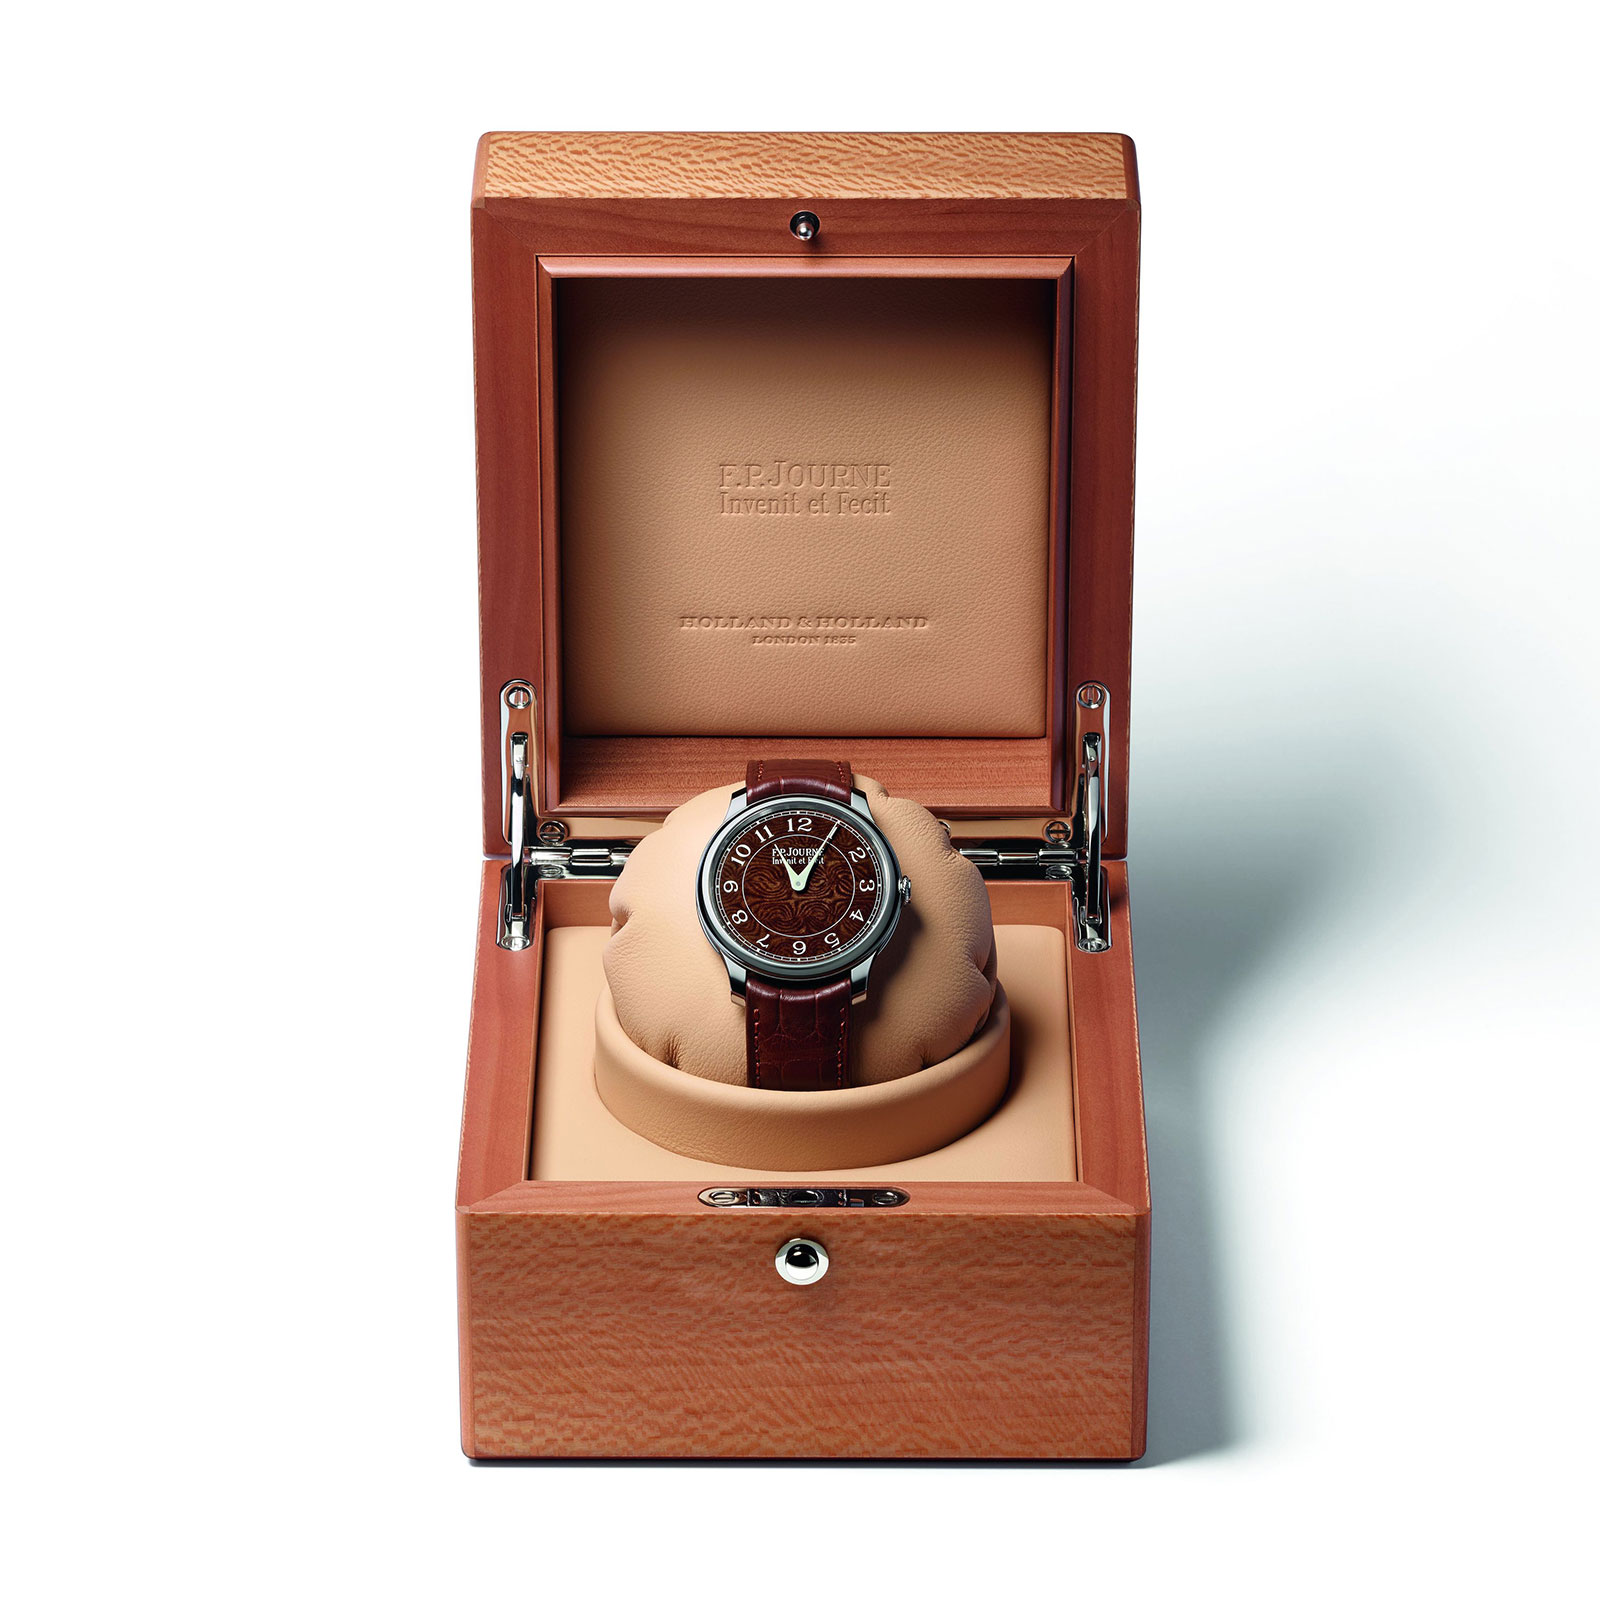 FP Journe Holland and Holland 3